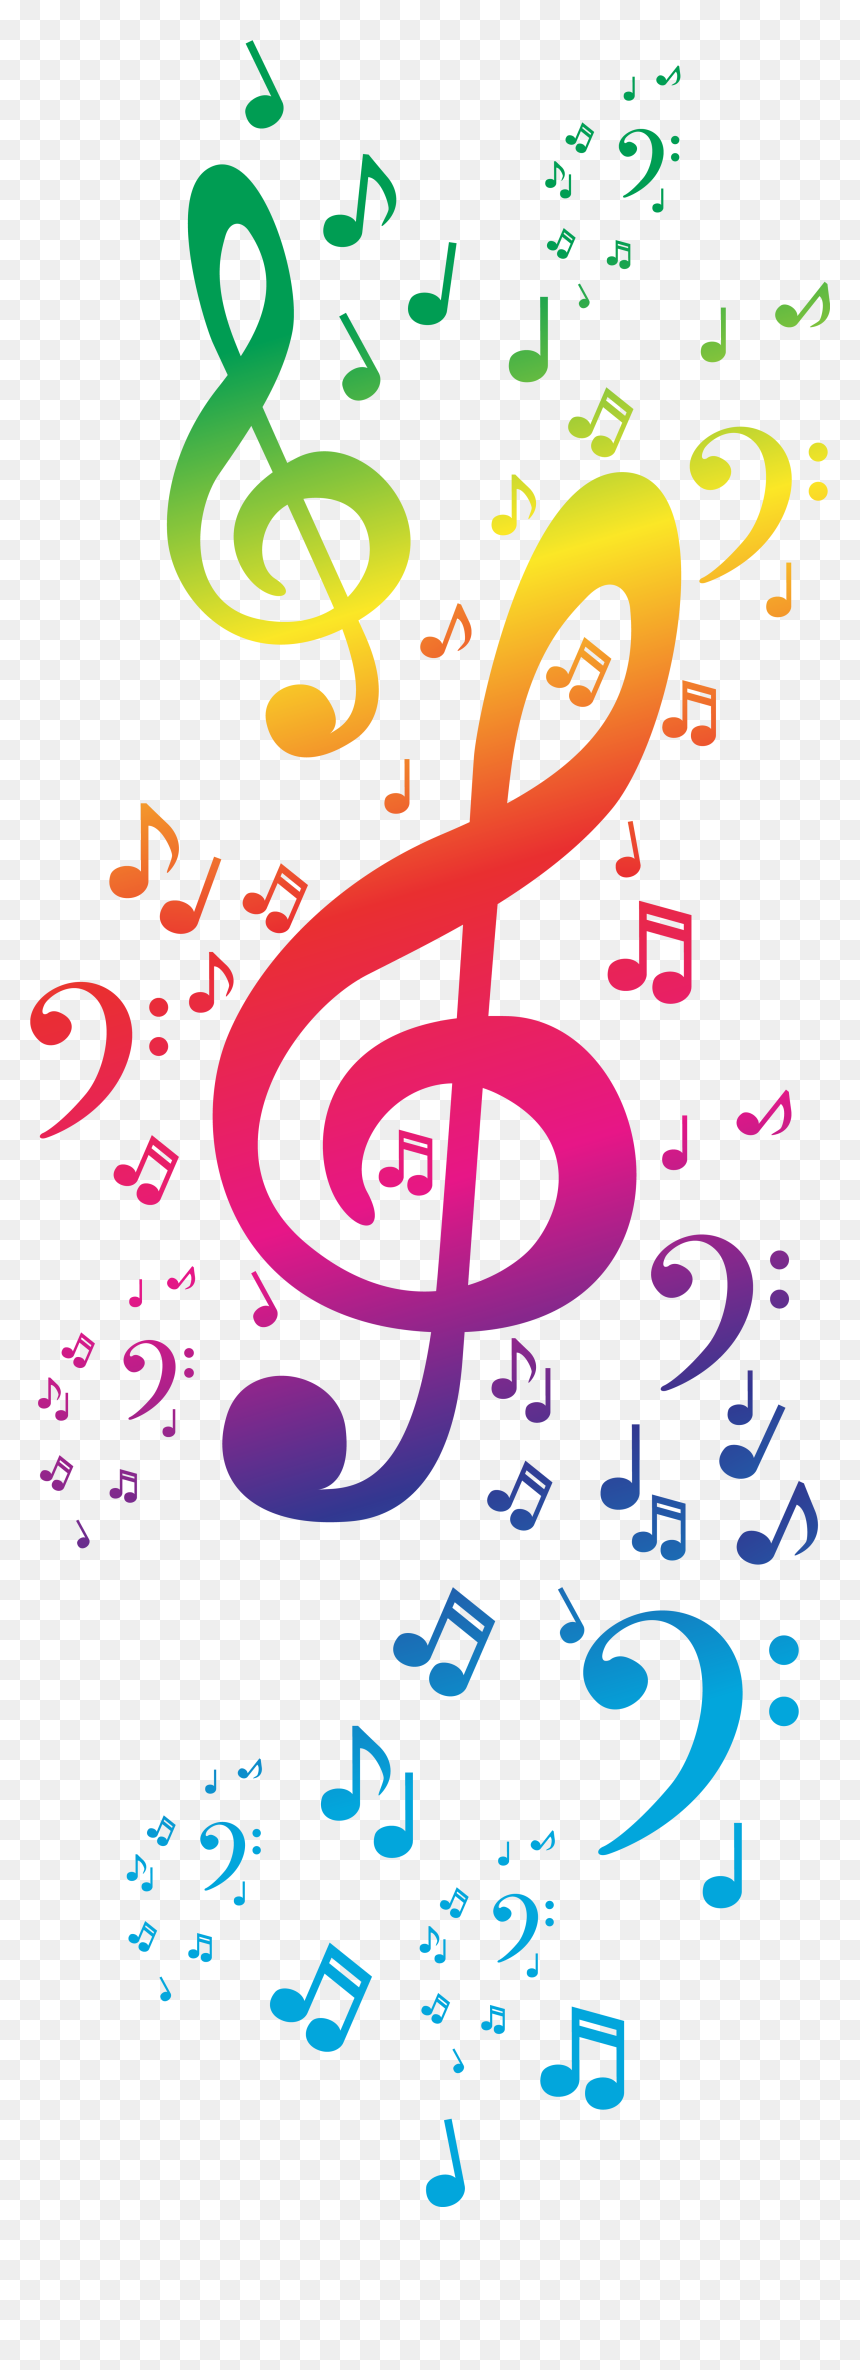 4570book - Colorful Music Notes Clipart Free, HD Png Download